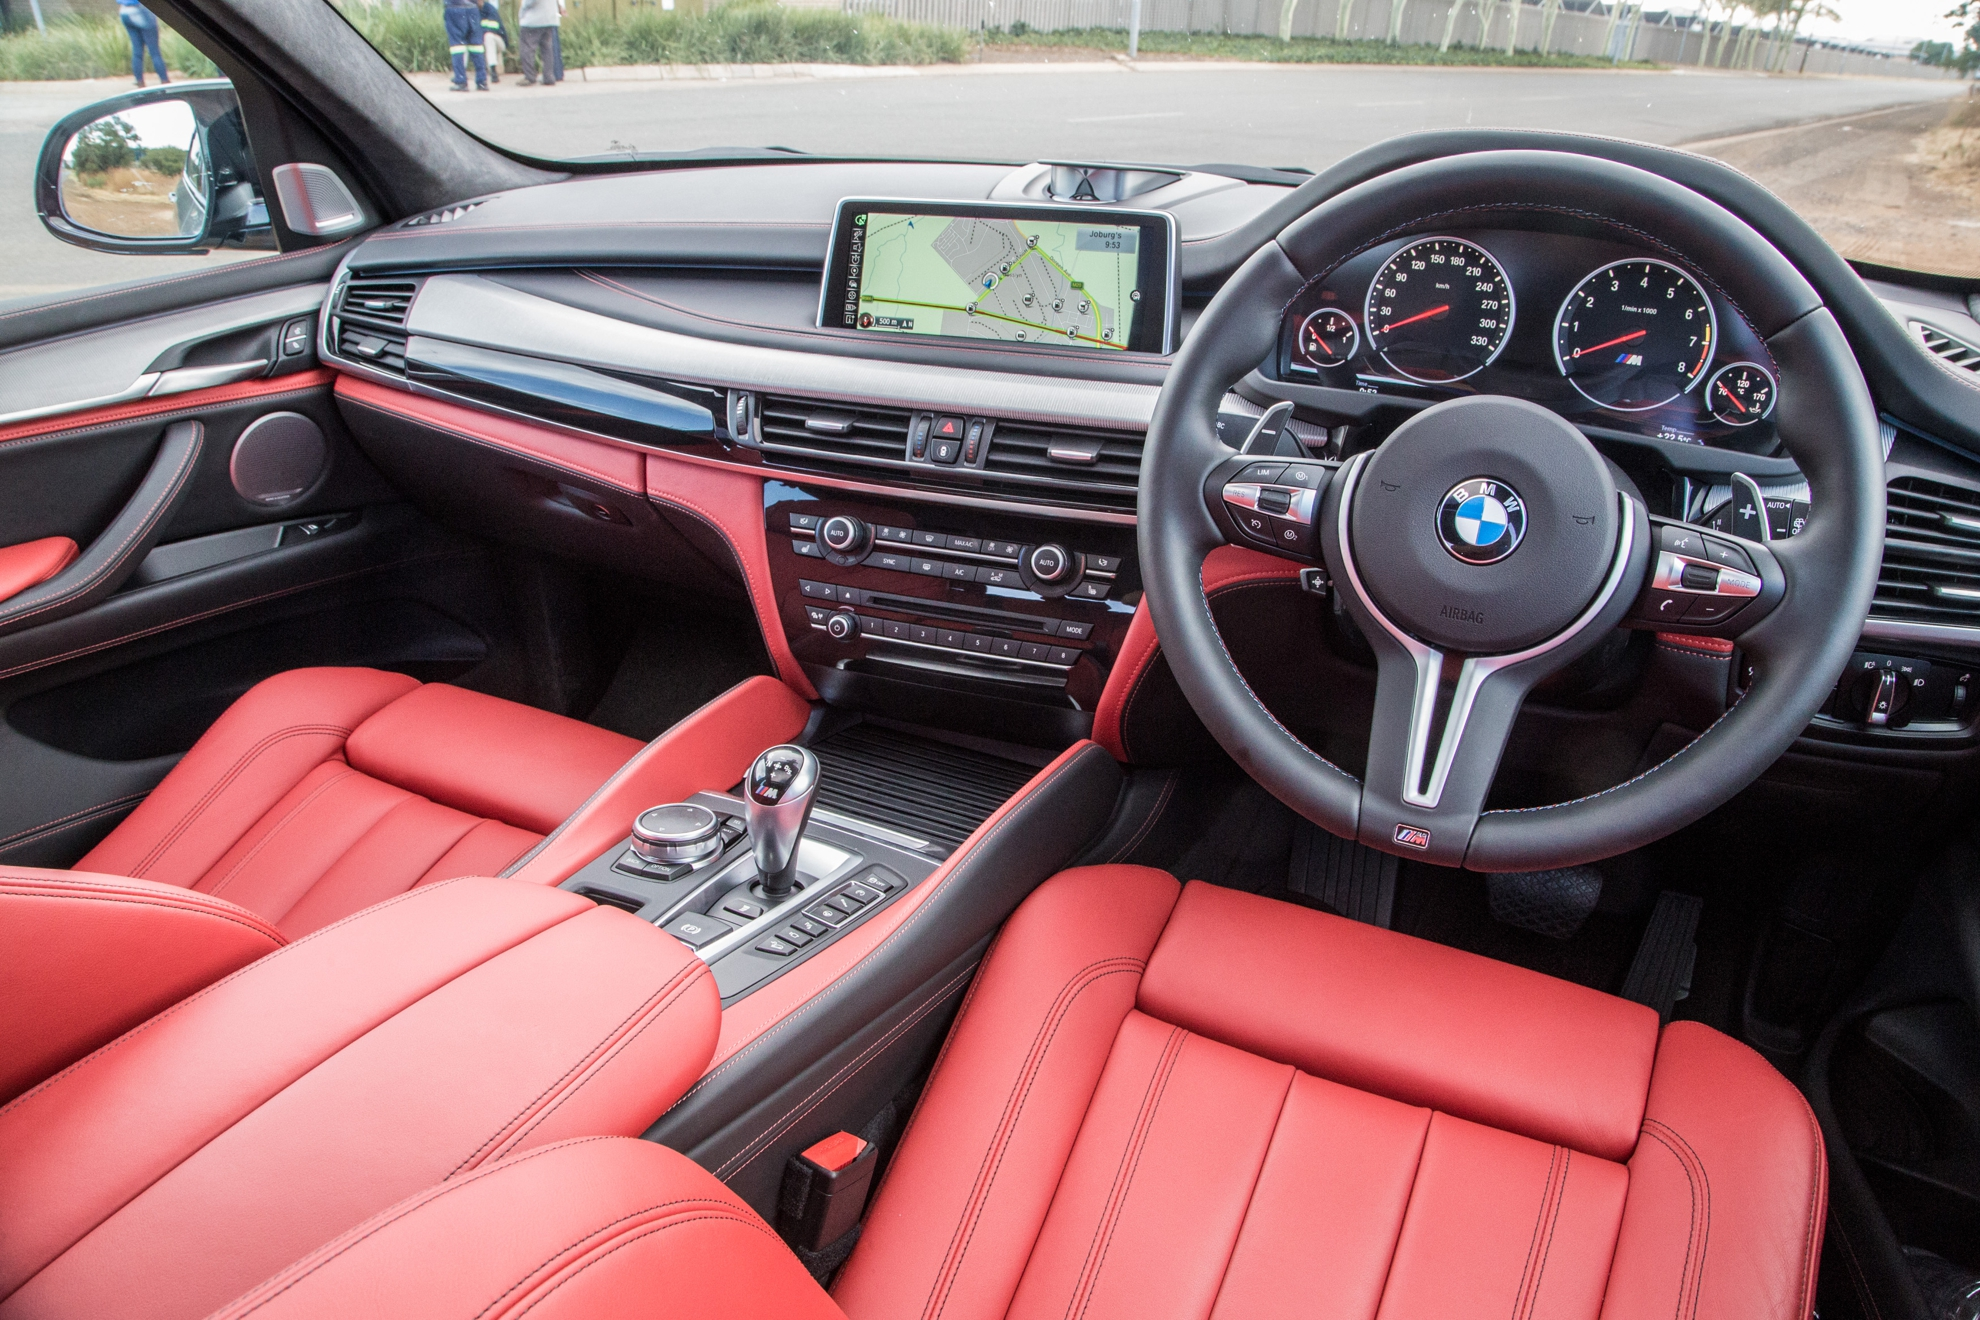 Bmw x5 m now available in south africa for Bmw x5 interior